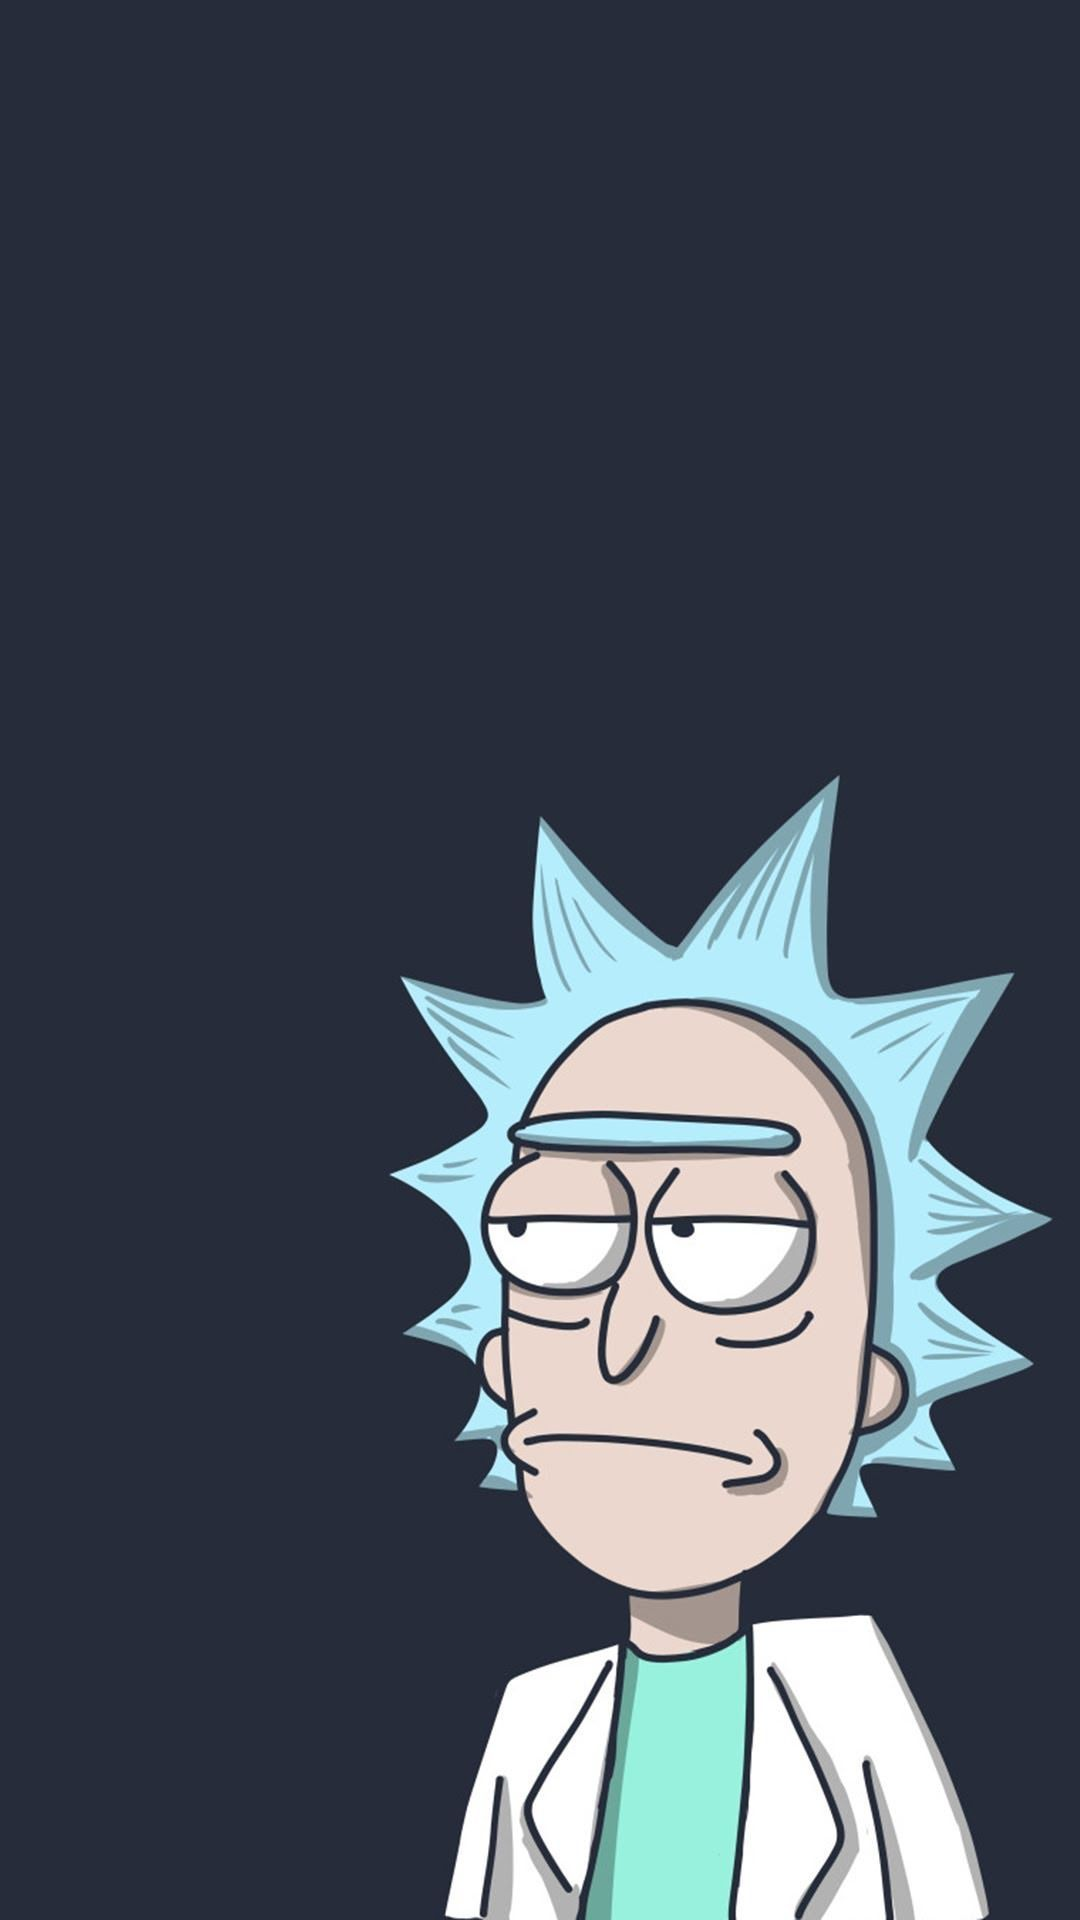 Rick And Morty Iphone Wallpapers Top Free Rick And Morty Within Amazing Rick Morty Wallpaper Iphone In 2020 Iphone Wallpaper Rick And Morty Rick And Morty Image Rick And Morty Poster